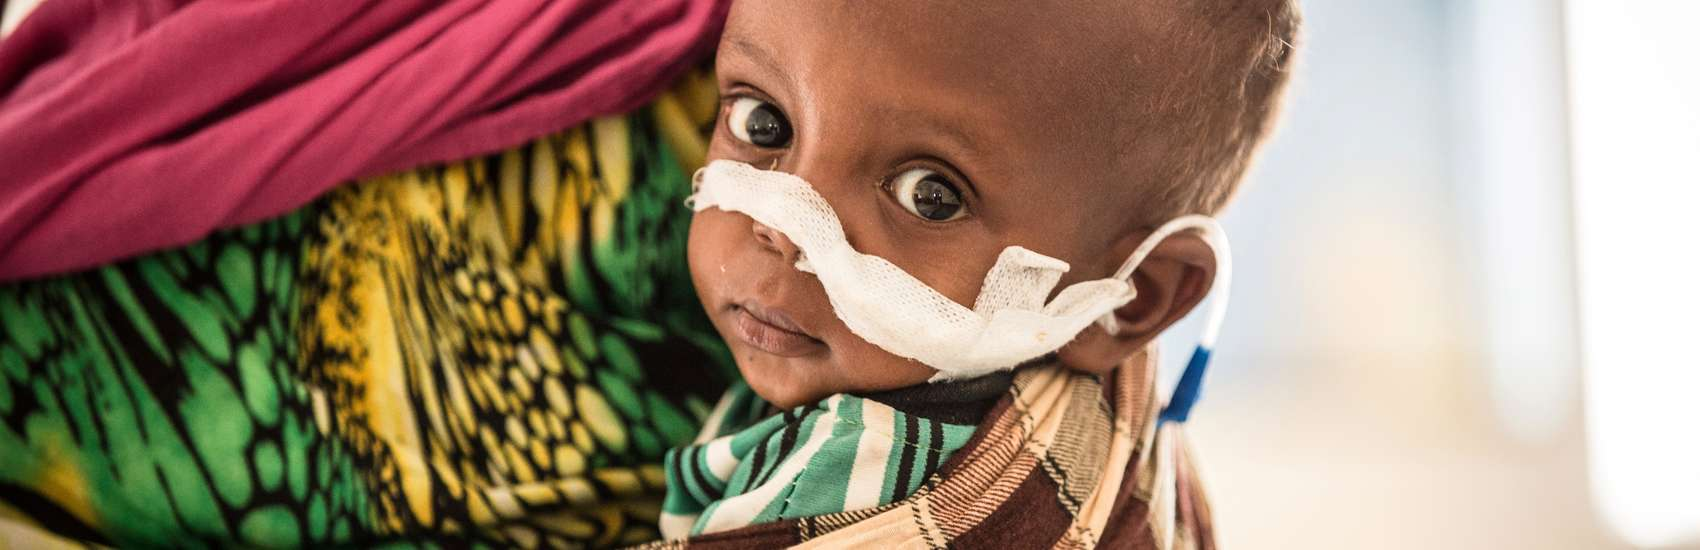 A 22-month-old boy and his mother recovers from malnutrition in the stabilization centre in a hospital in Somaliland. Photo Credit: Save the Children 2016.